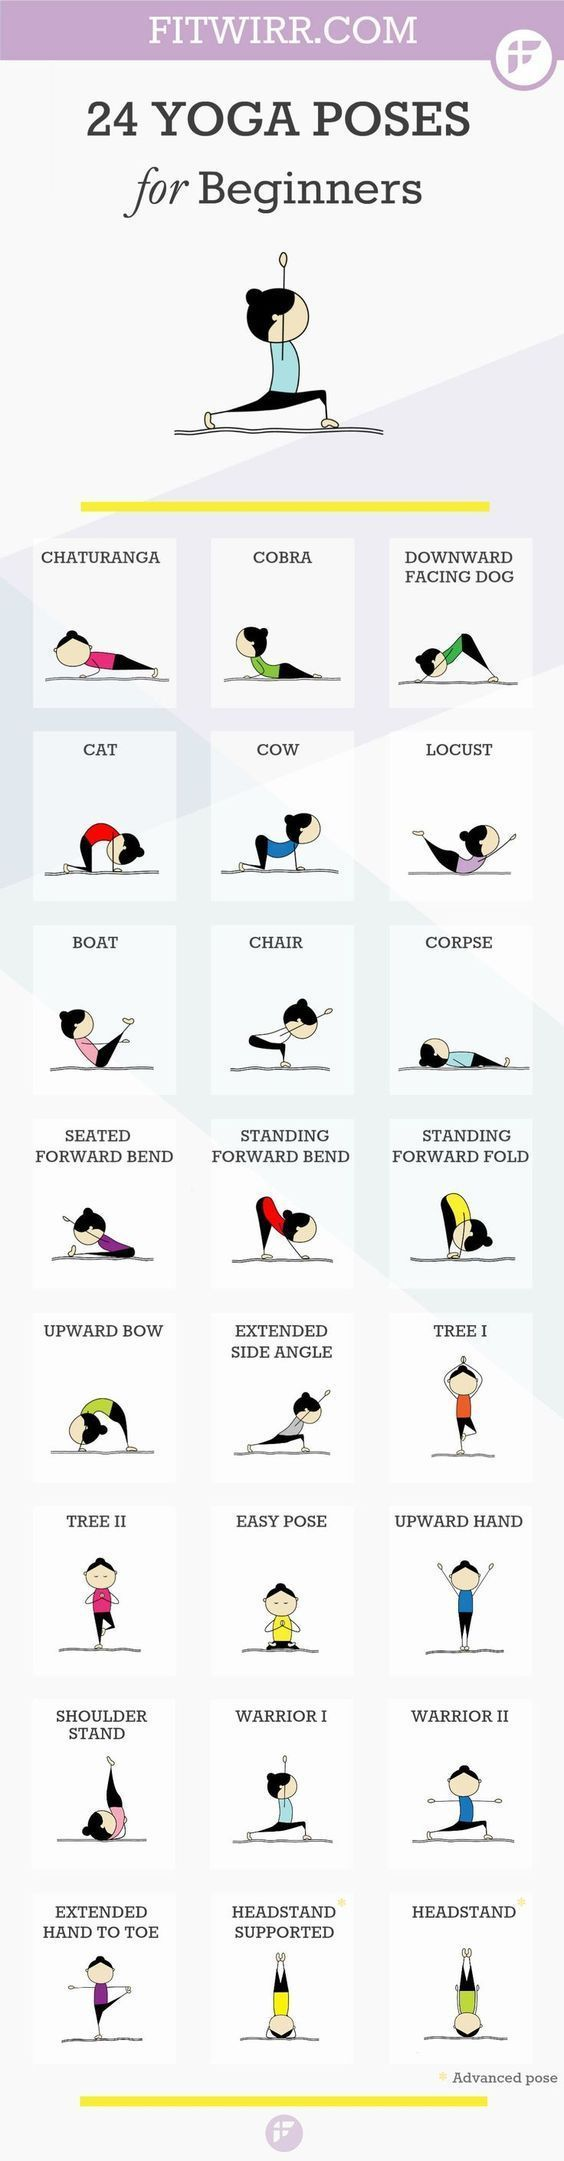 DownDog Healthy Lifestyle Tips: 24 Beginners Yoga Poses You Can Start with at Home. From the Downdog Diary Yoga Blog found exclusively at DownDog Boutique: